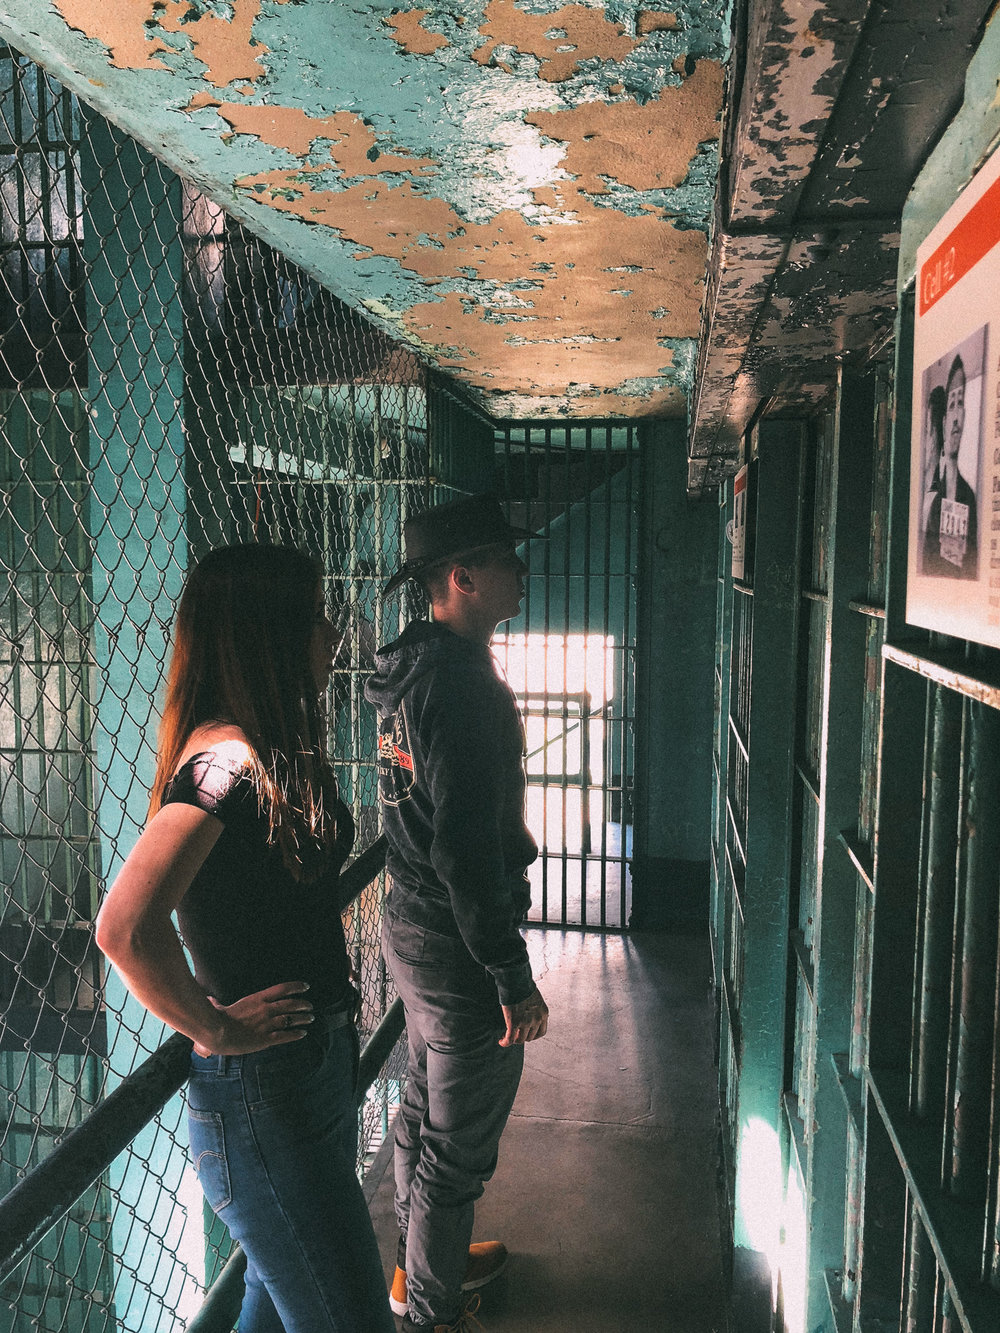 Kent and Emily reading inmate's stories